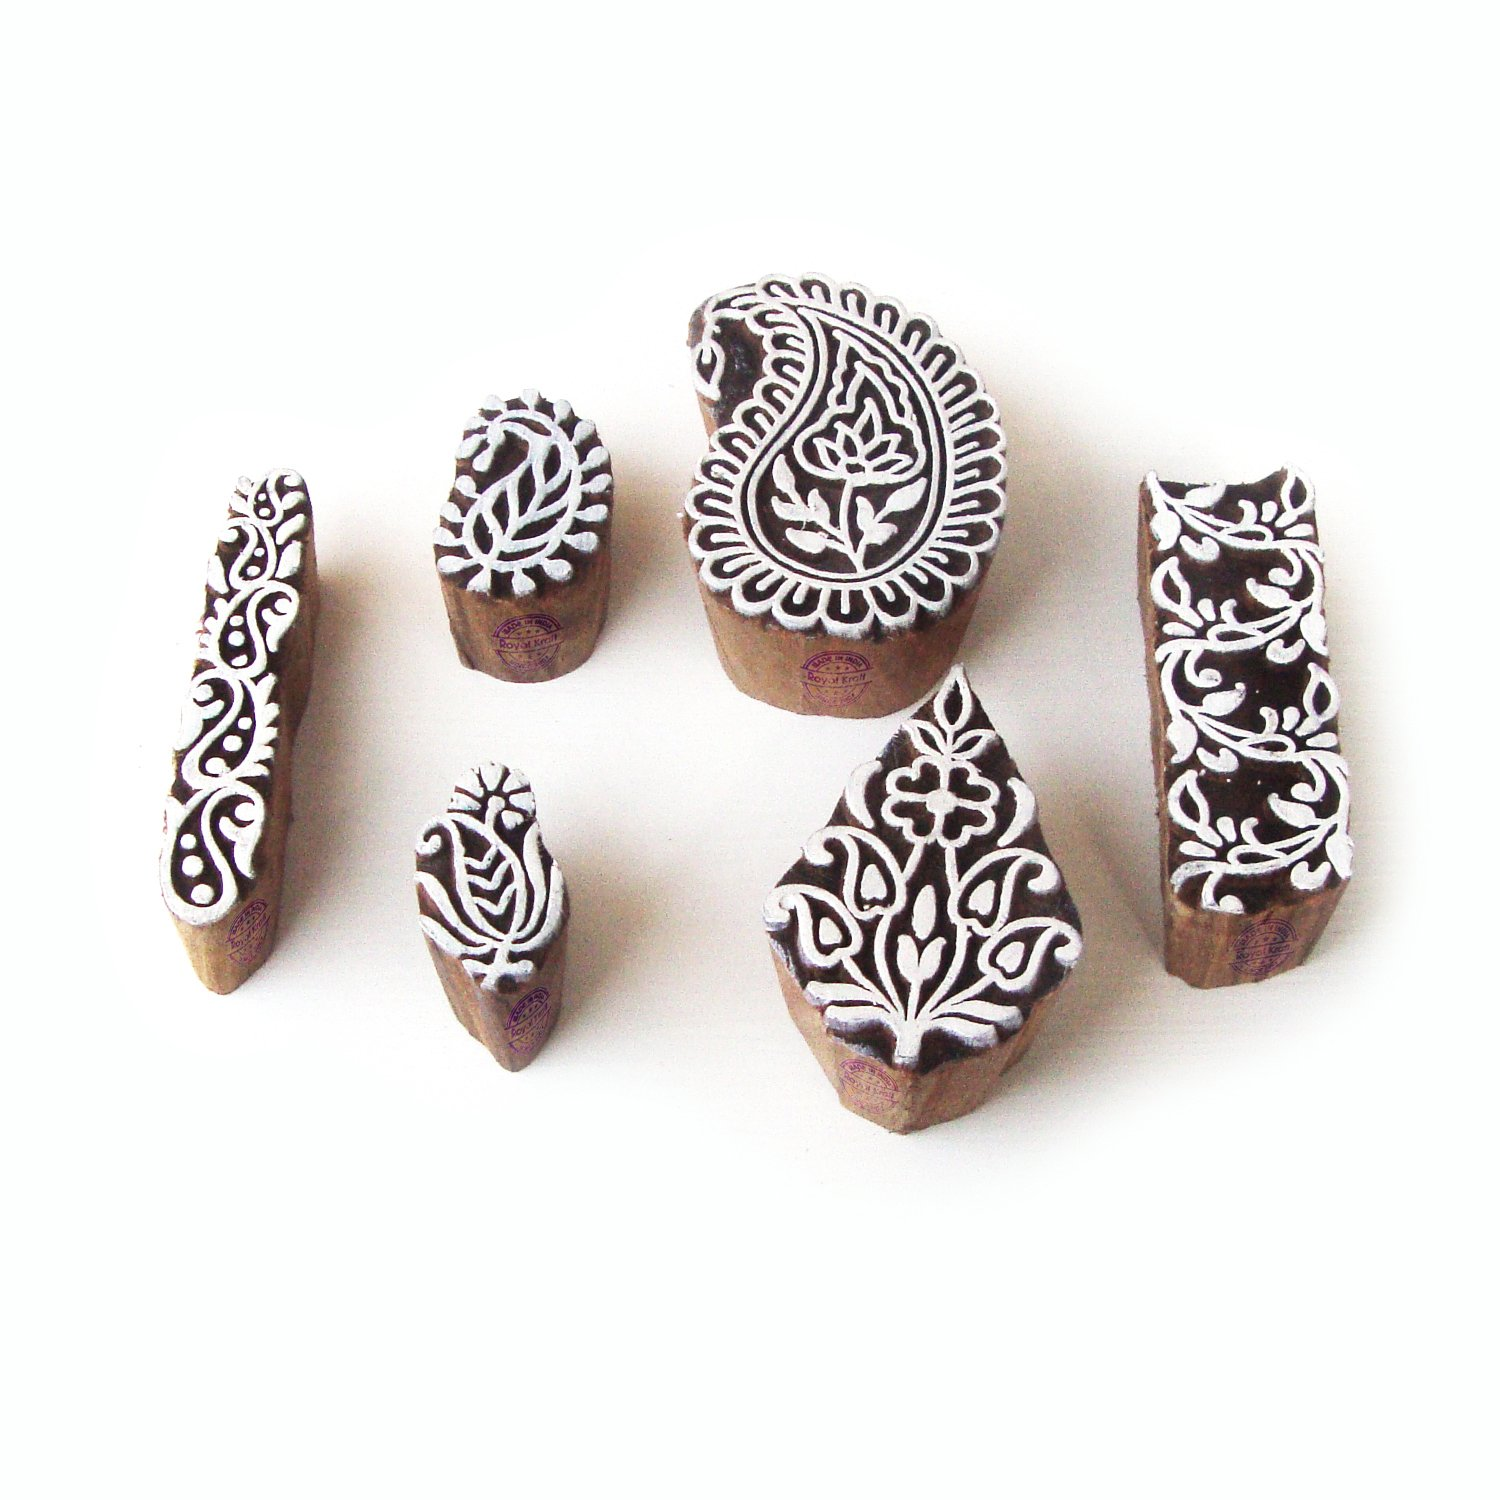 Elegant Paisley and Floral Designs Wooden Printing Stamps (Set of 6)